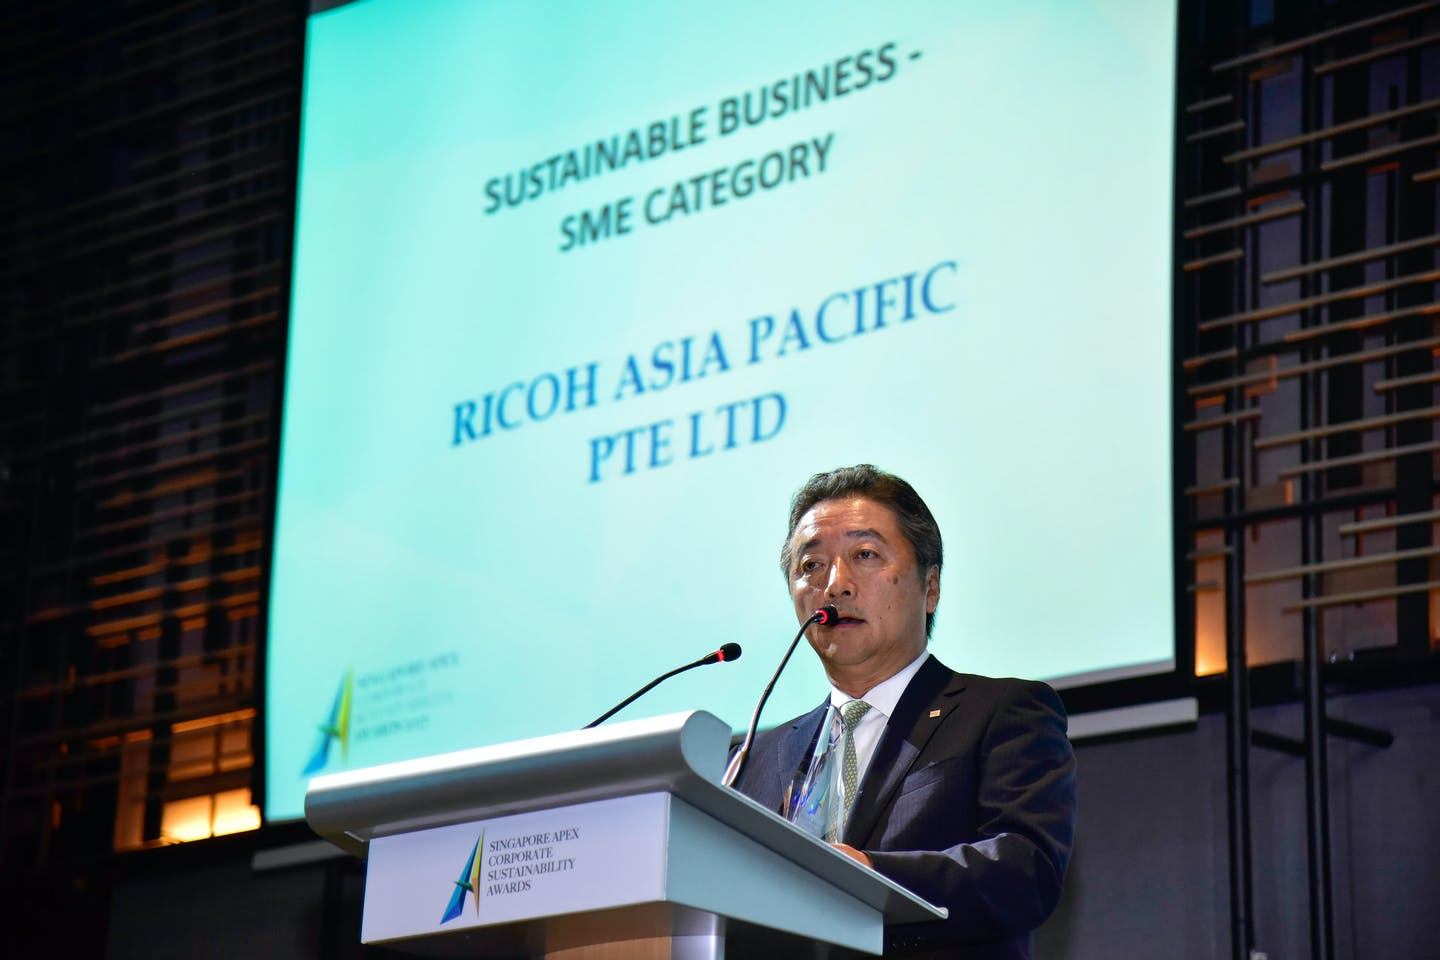 Ricoh Asia Pacific receives the Singapore Apex Corporate Sustainability Awards 2017 for its sustainable business practices